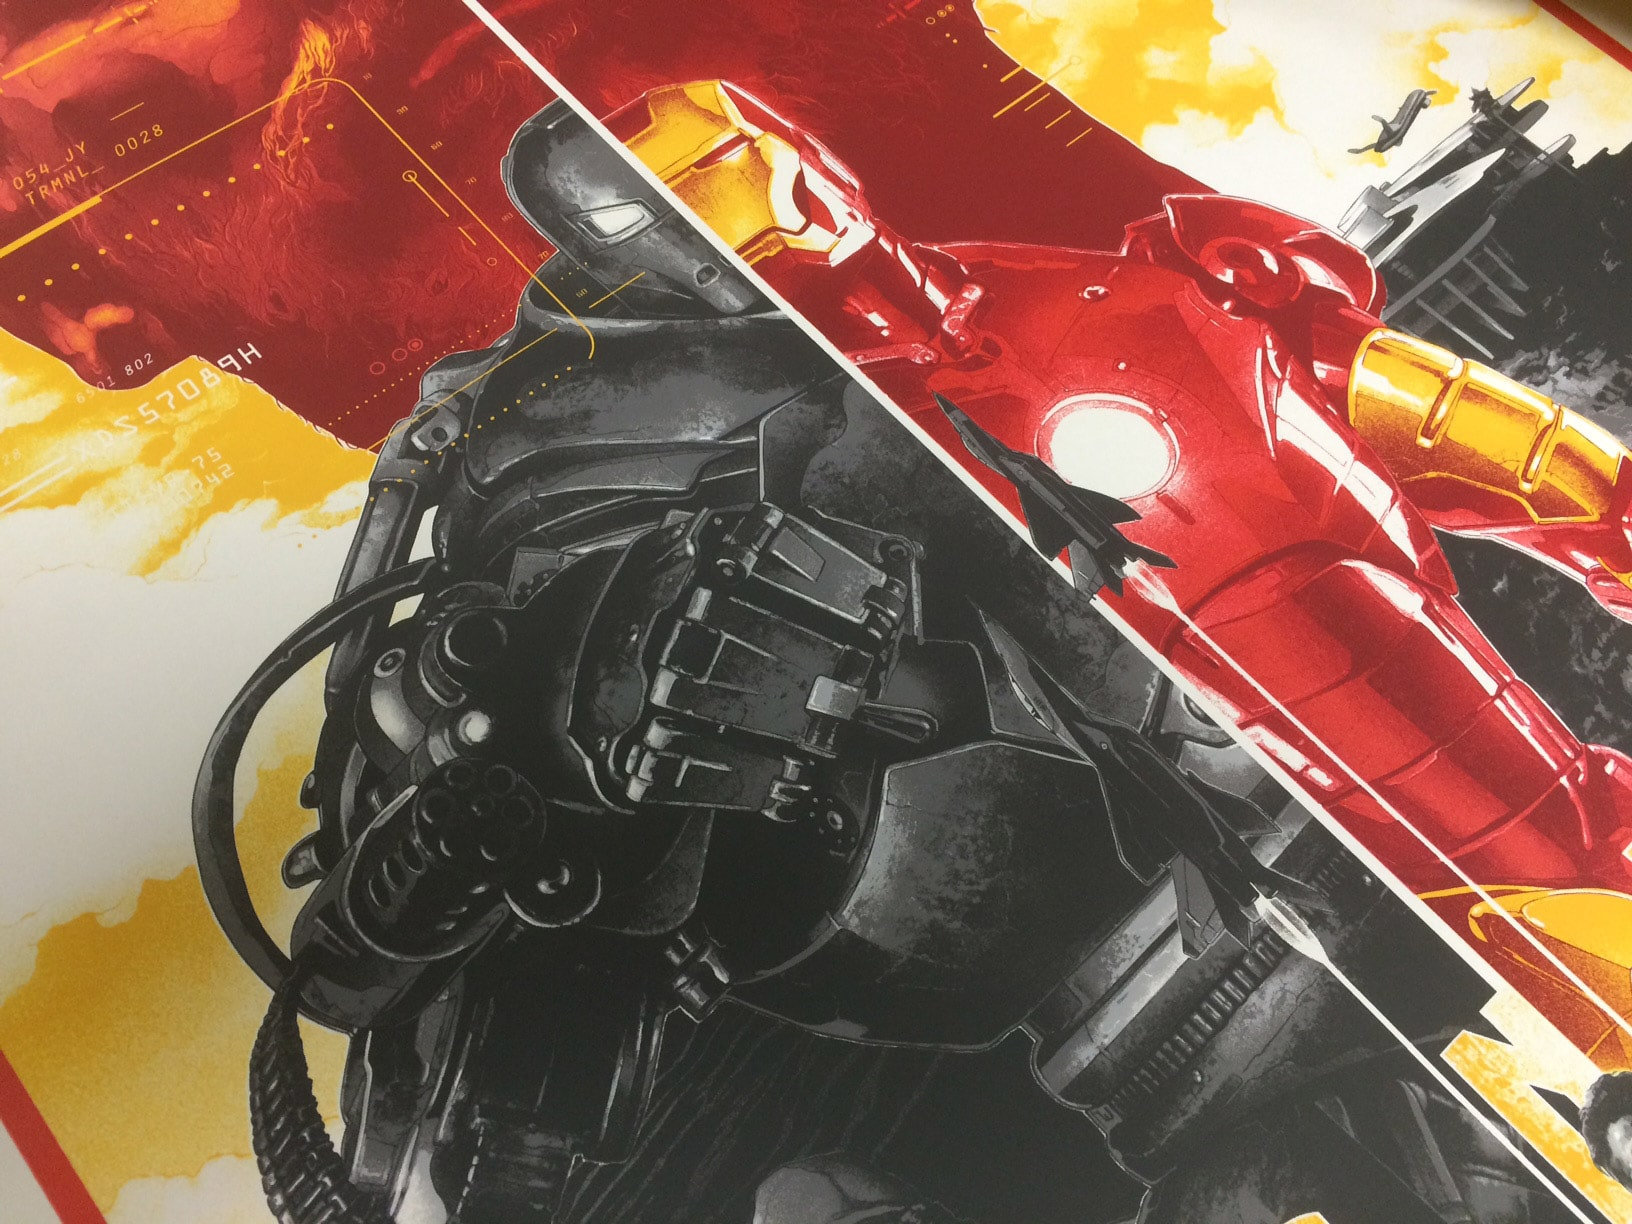 Iron Man Poster Detail 1